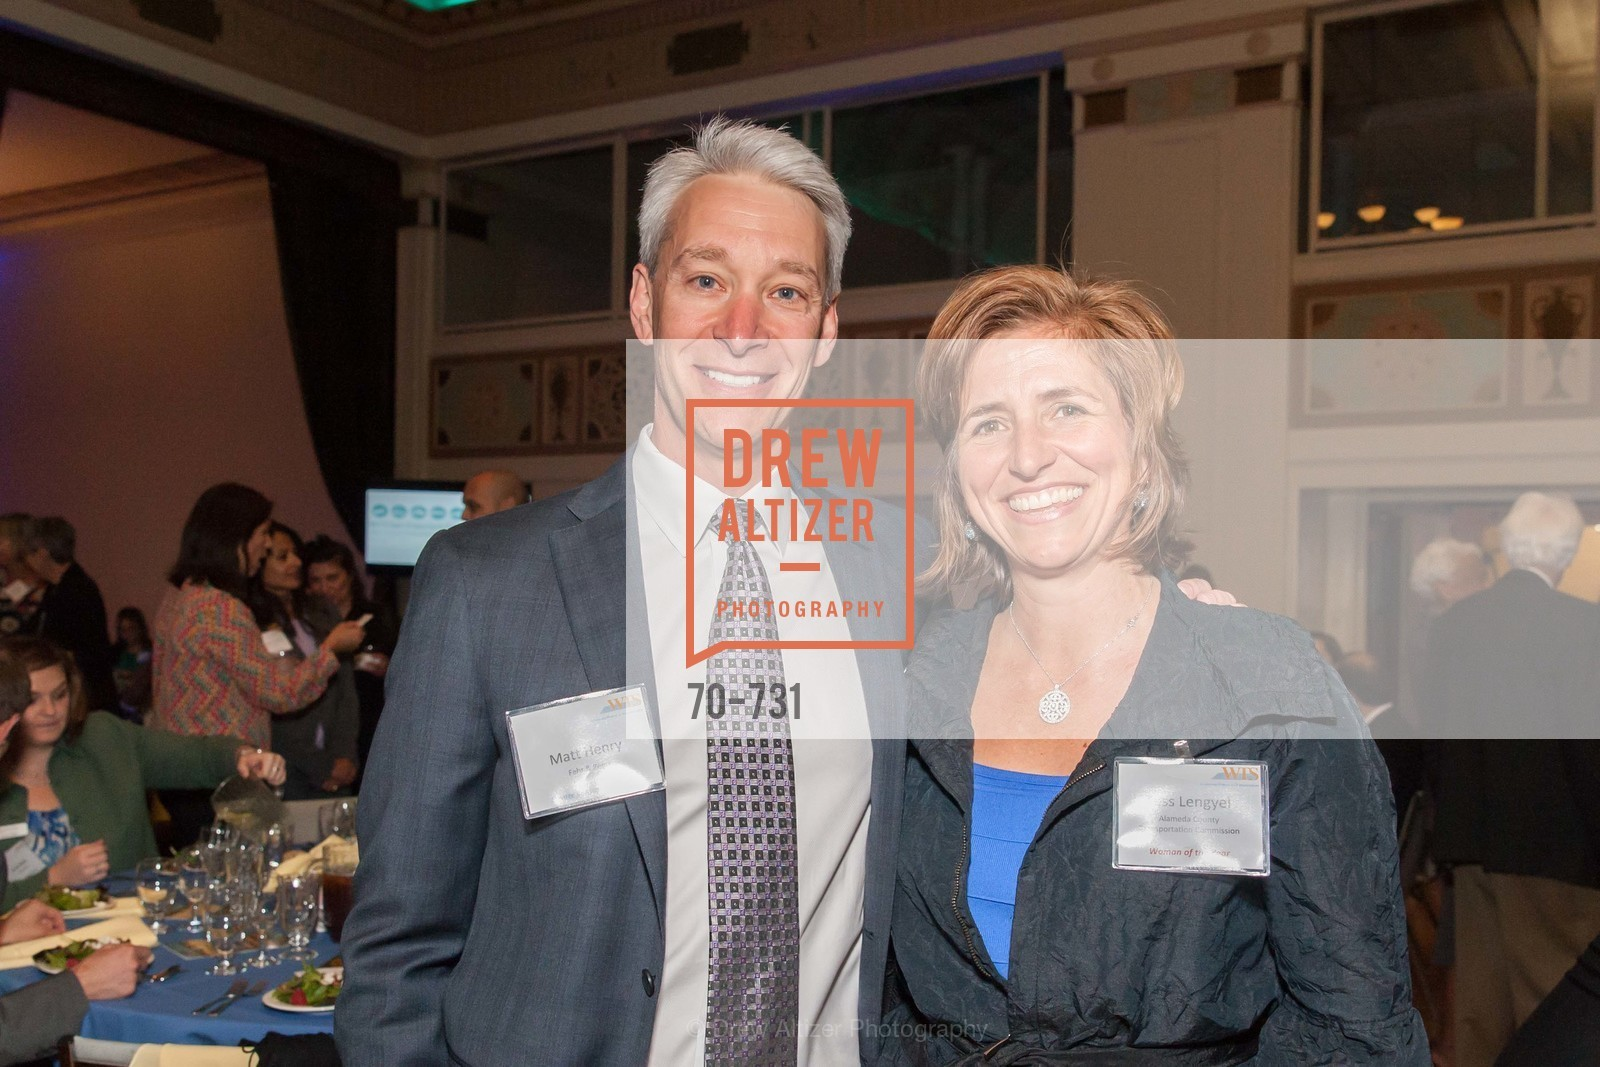 Matt Henry, Tess Lengyel, WOMEN'S TRANSPORTATION SEMINAR SF Bay Area Chapter Annual Scholarship Awards, US, May 15th, 2015,Drew Altizer, Drew Altizer Photography, full-service event agency, private events, San Francisco photographer, photographer California